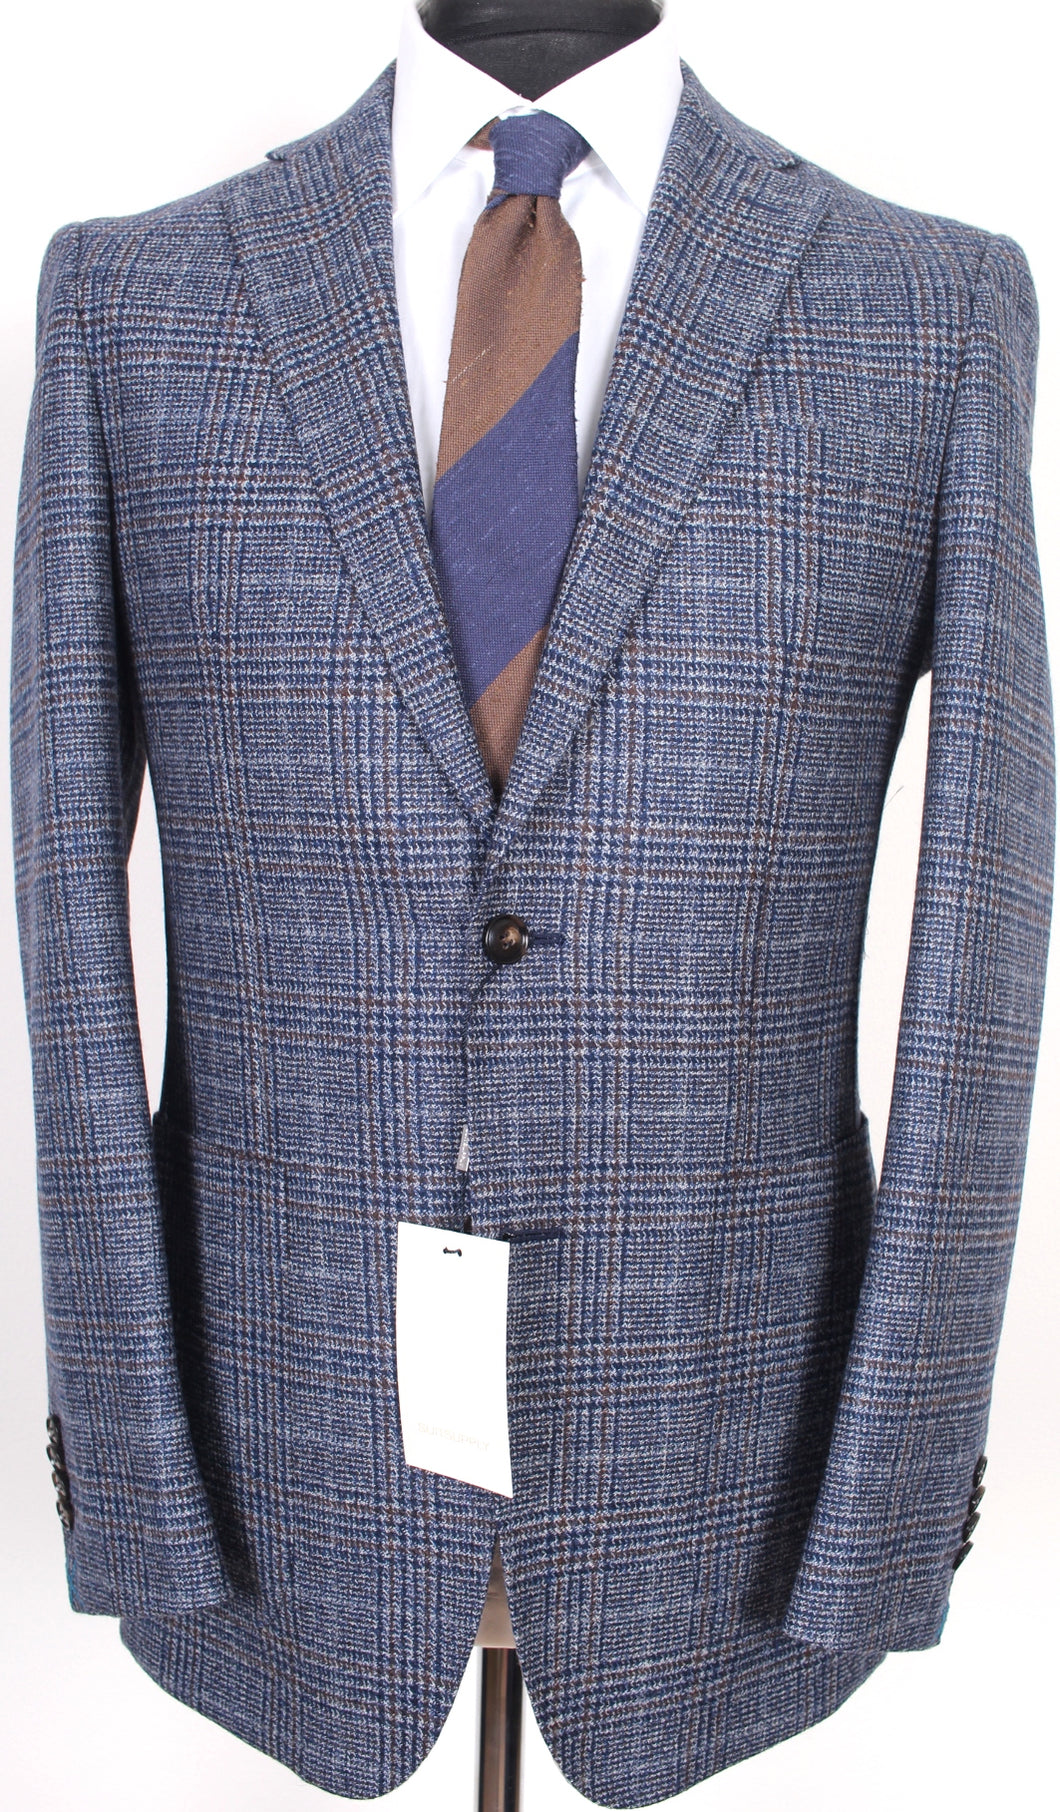 New Suitsupply Havana Blue/Brown Check 100% Wool Suit - Size 38R (FINAL SALE)